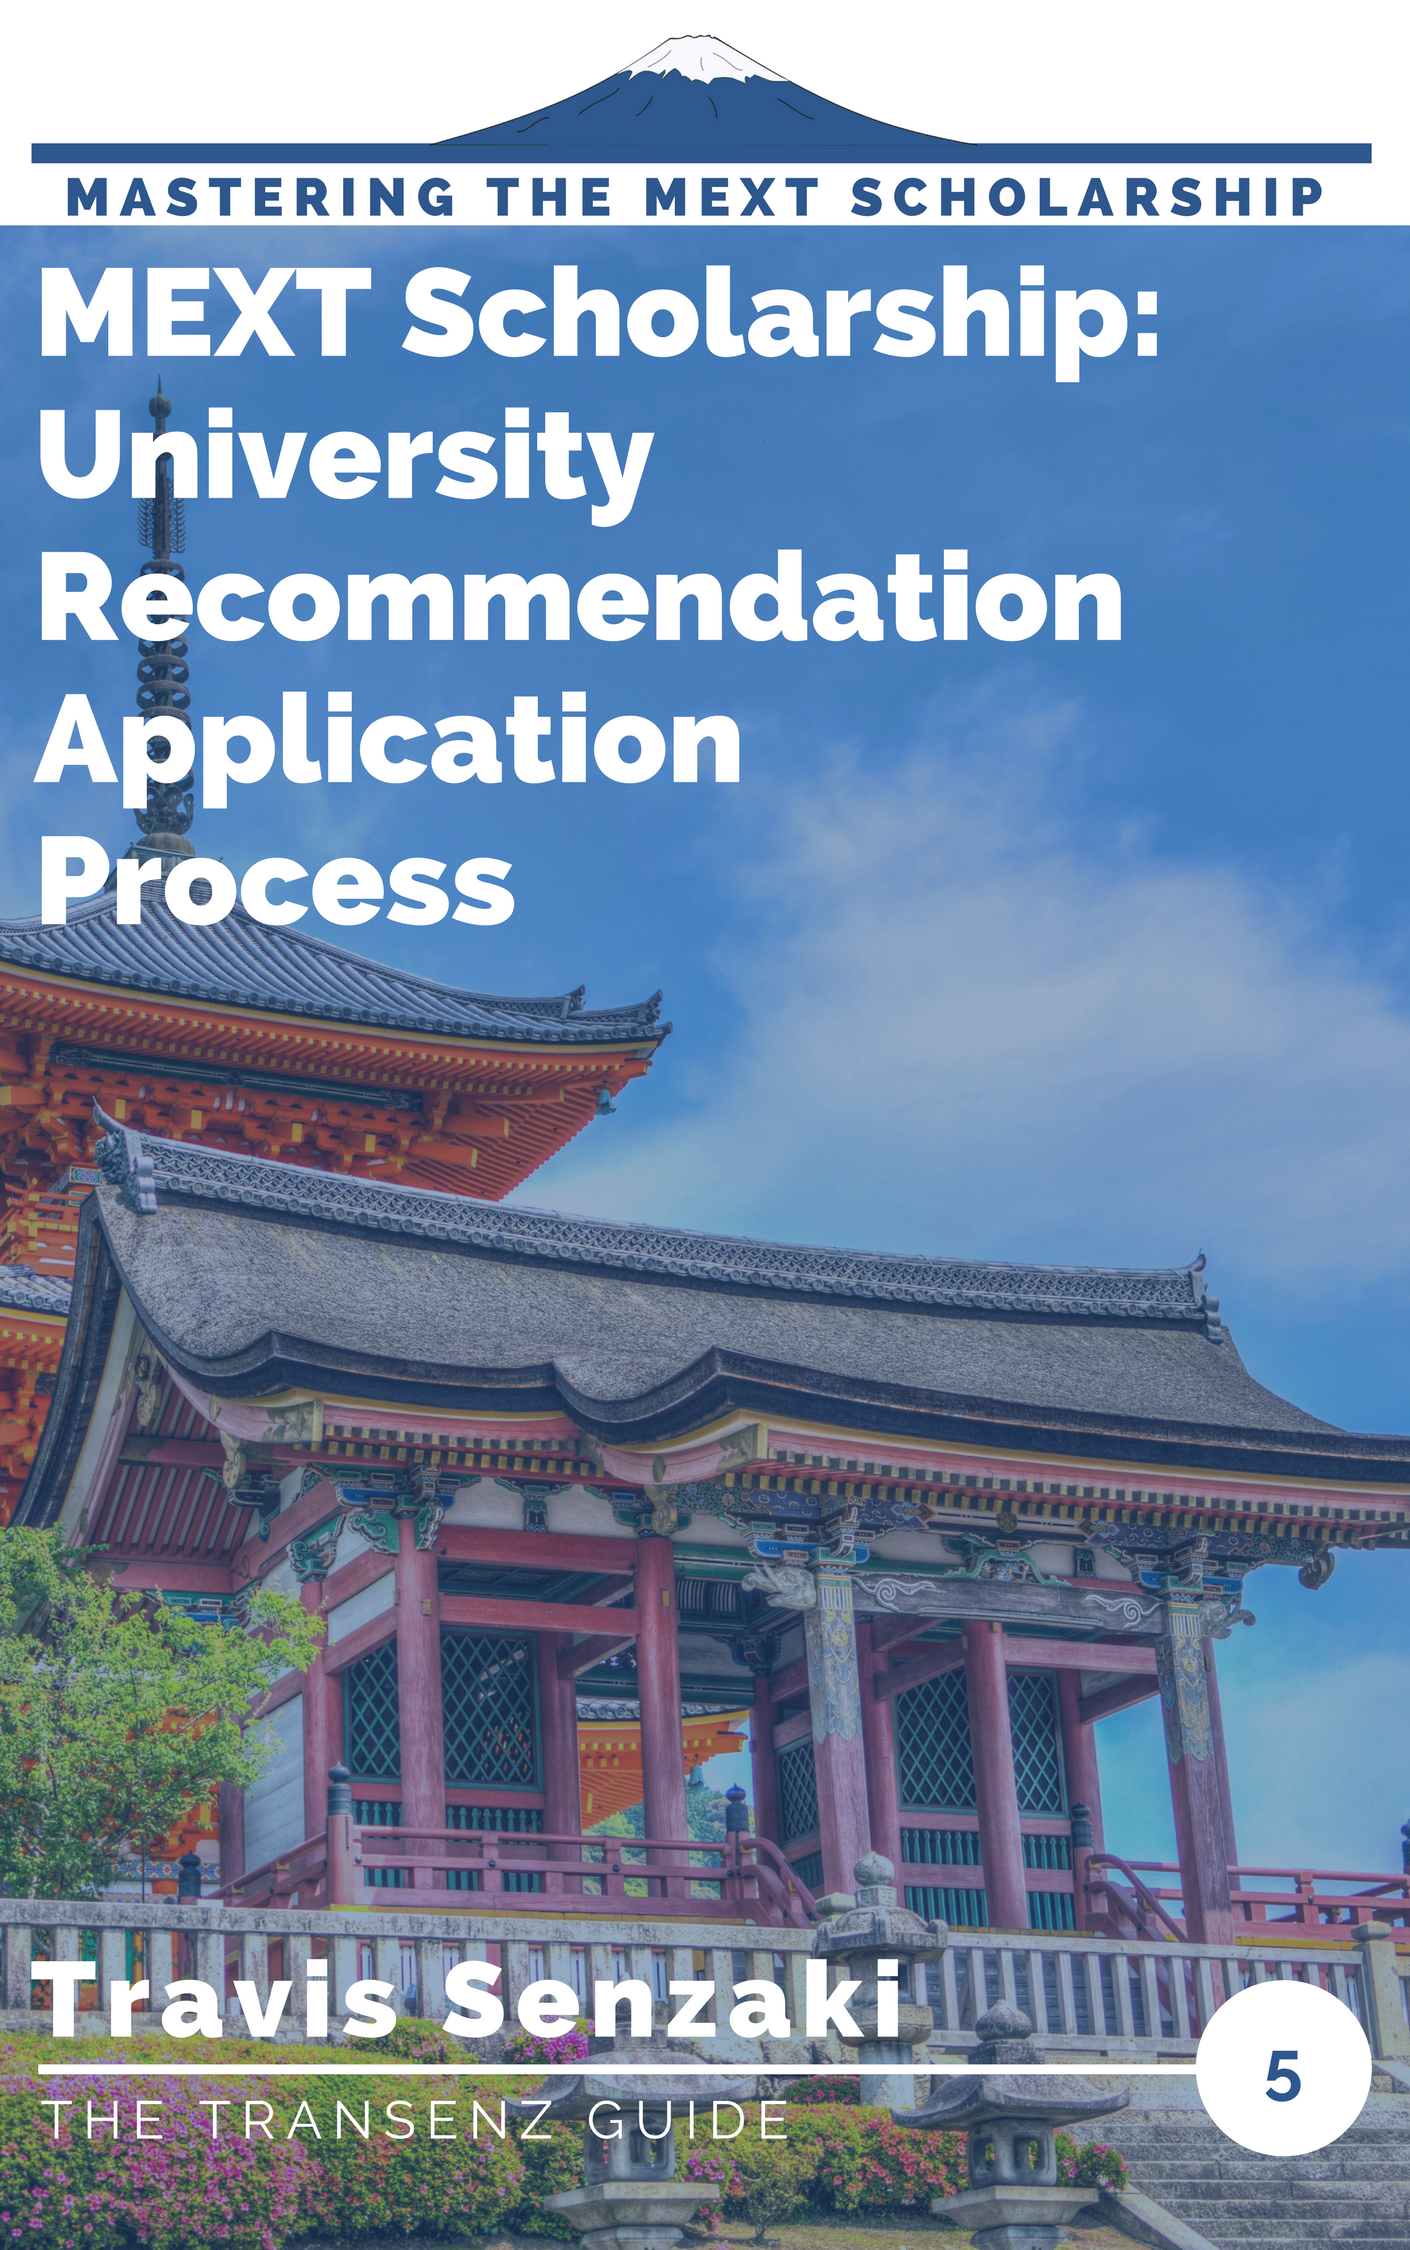 How to apply for the MEXT scholarship by university recommendation guide ebook